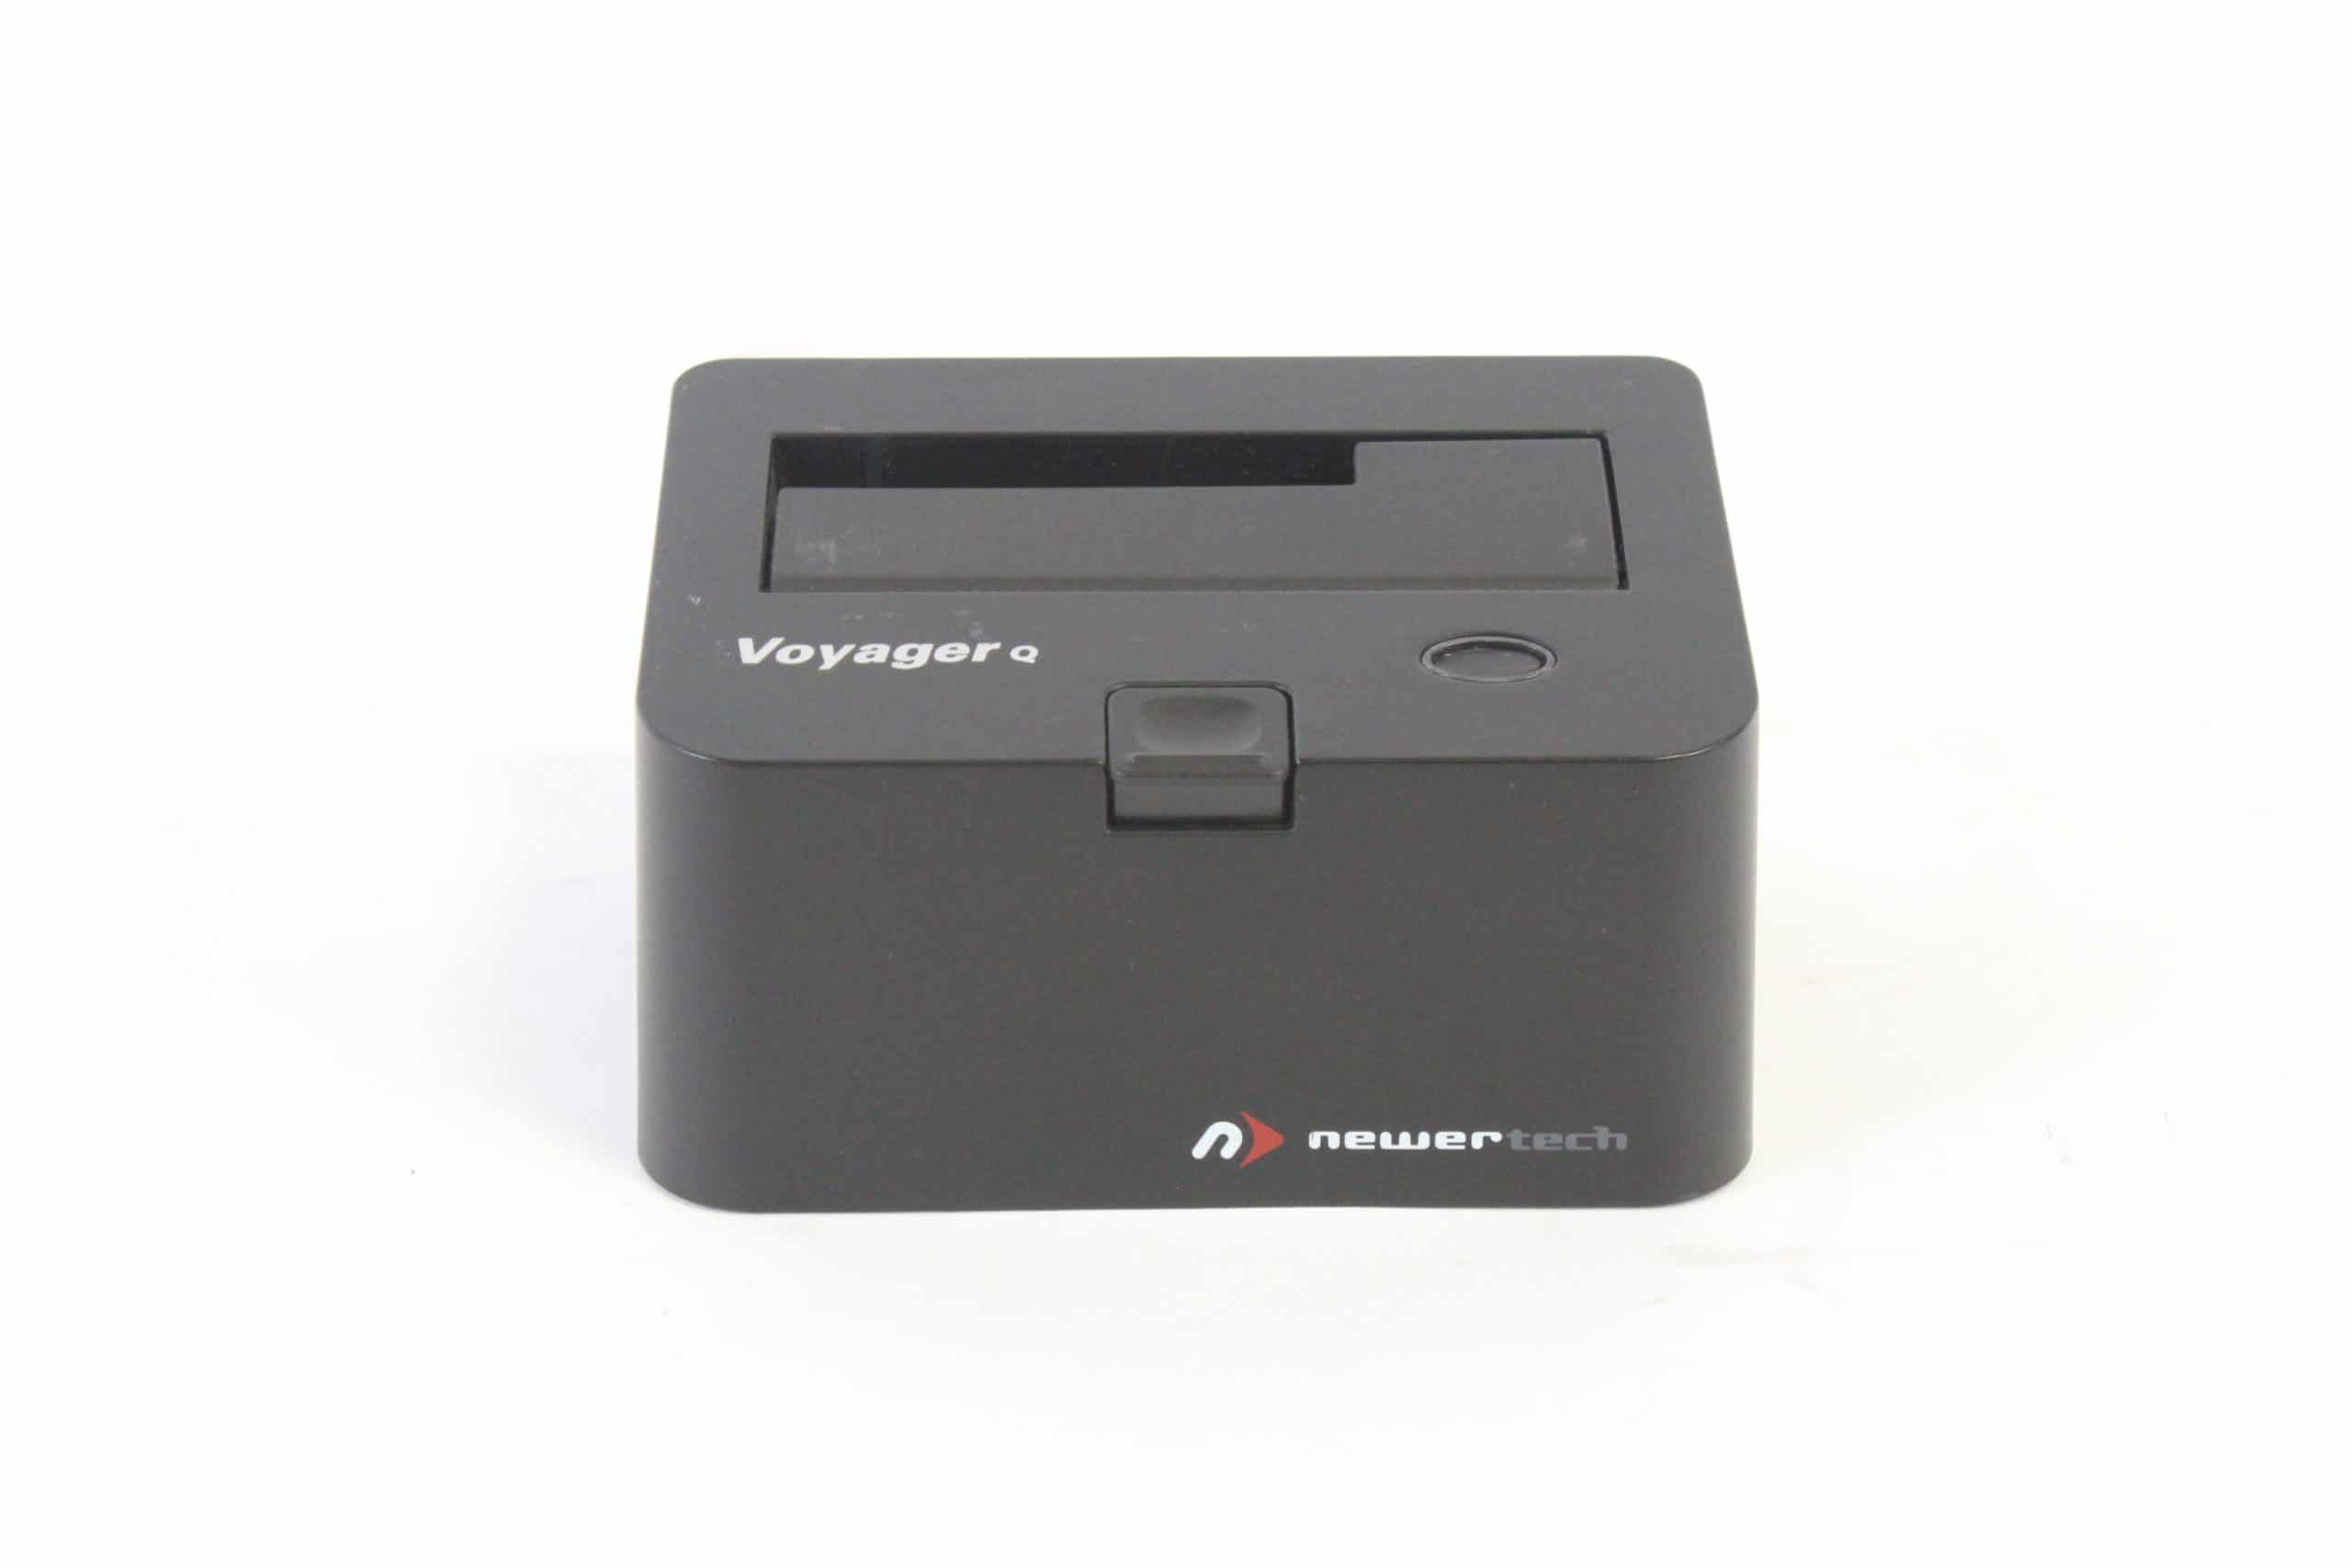 newertech-voyager-q-quad-interface-sata-hard-drive-docking-solution cover